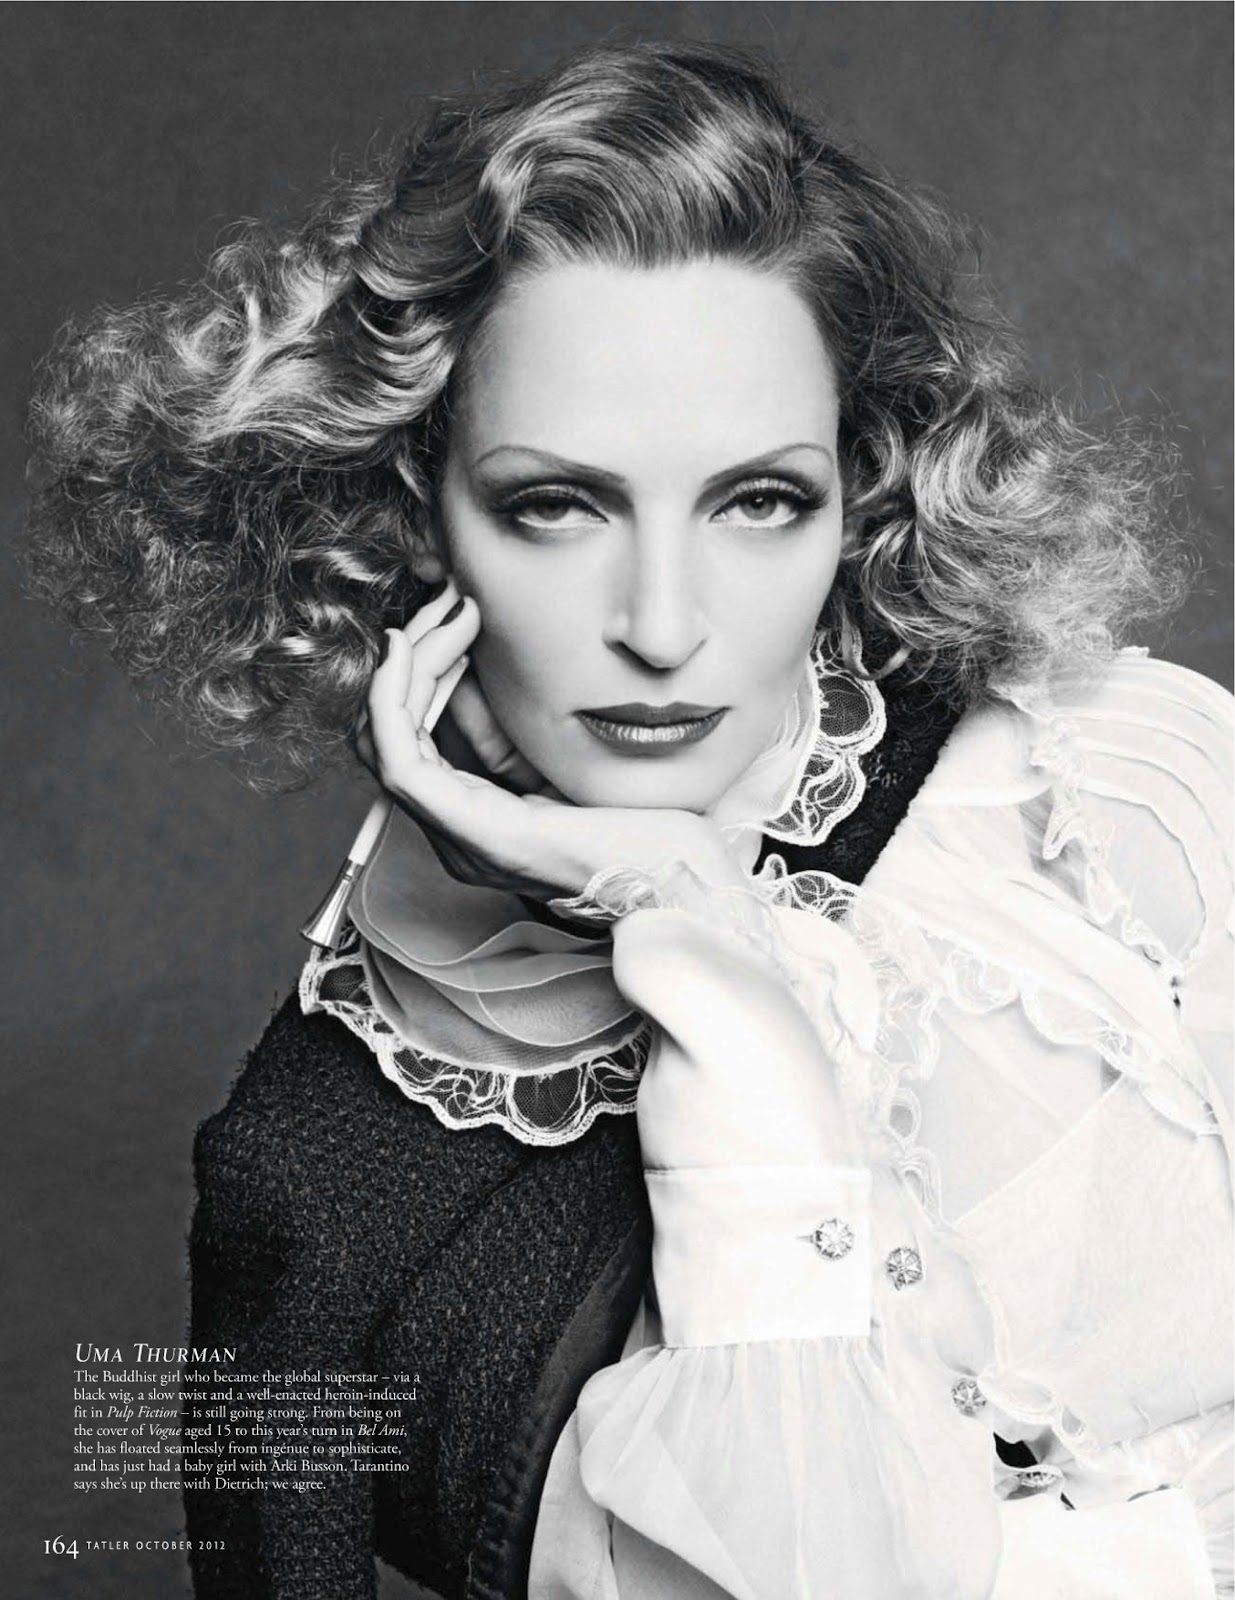 http://3.bp.blogspot.com/-0Veg-yEQYso/UEicv0leBAI/AAAAAAABr3I/OblCZaiCeIY/s1600/You-Looking-At-Moi-by-Karl-Lagerfeld-for-Tatler-UK-October-2012-5.jpg